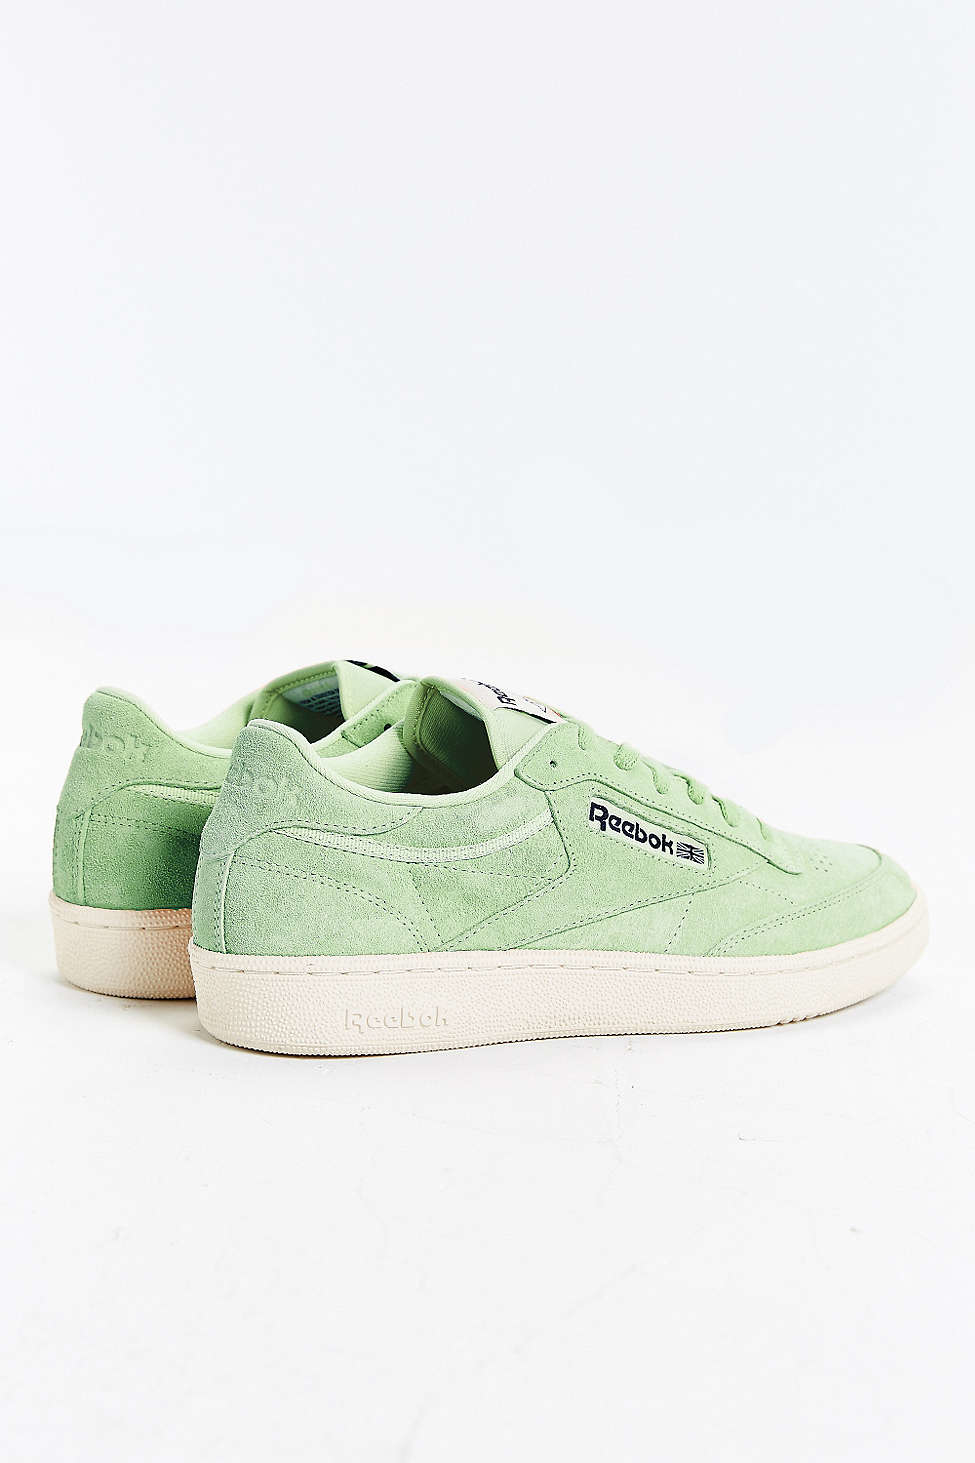 0892f8d821bd Lyst - Reebok Club C 85 Pastel Sneaker in Green for Men